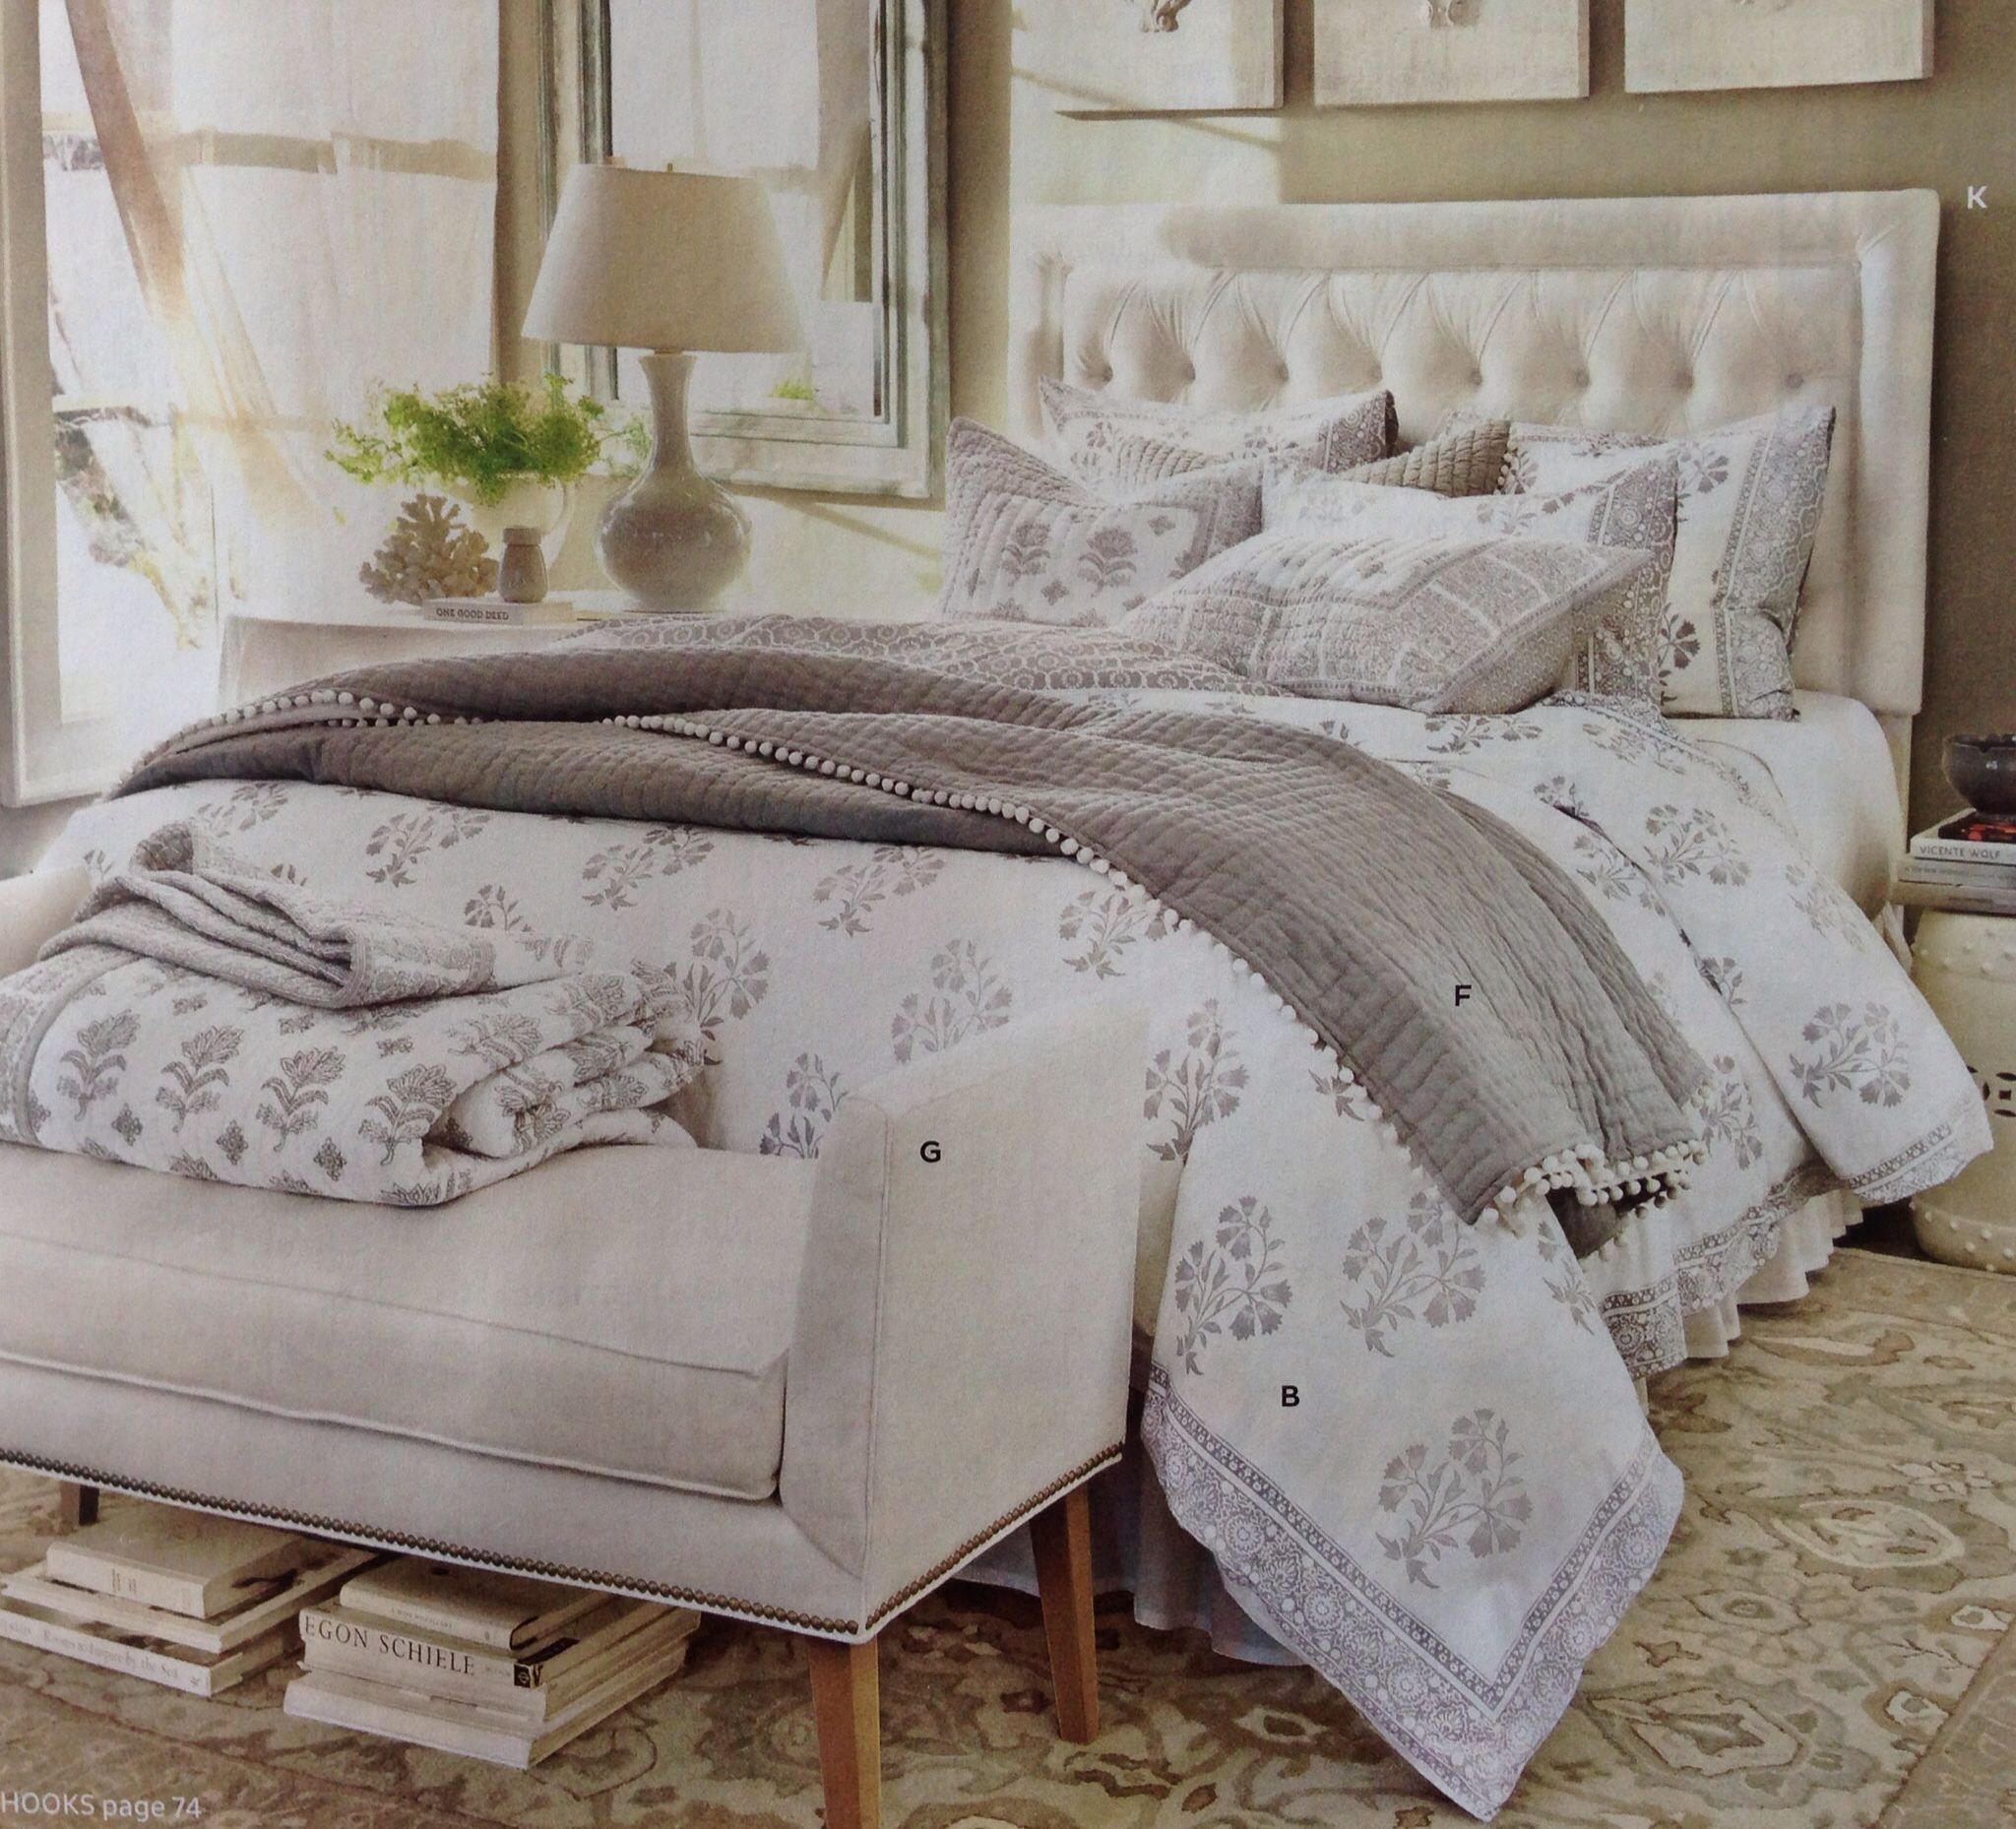 Love the headboard bench as footboard and use of rug to anchor the